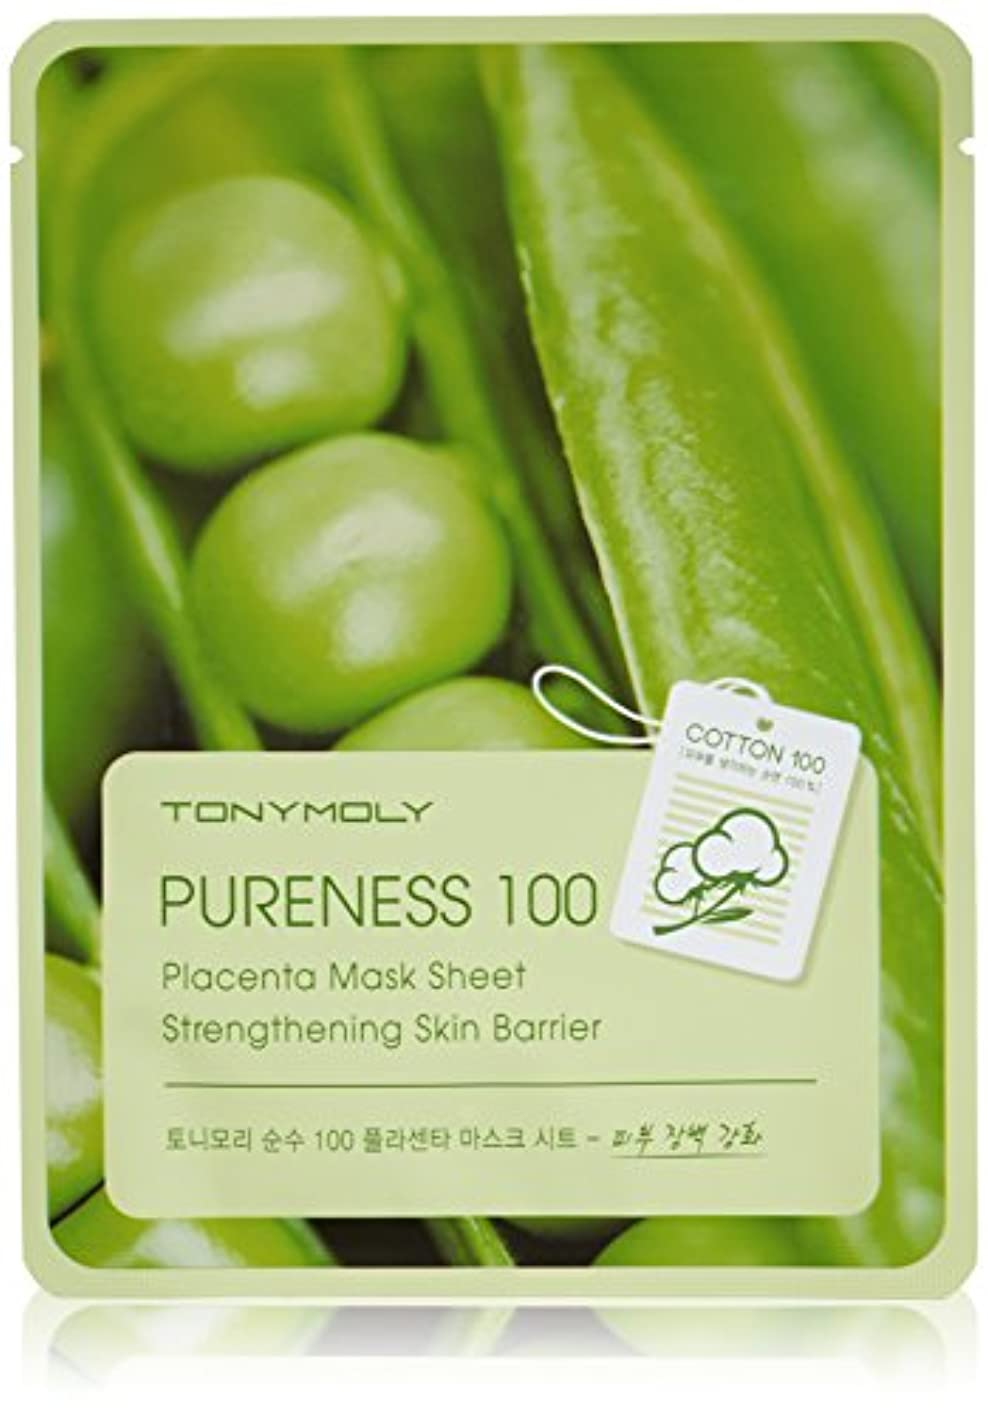 動力学インサート目覚めるTONYMOLY Pureness 100 Placenta Mask Sheet Strengthening Skin Barrier (並行輸入品)